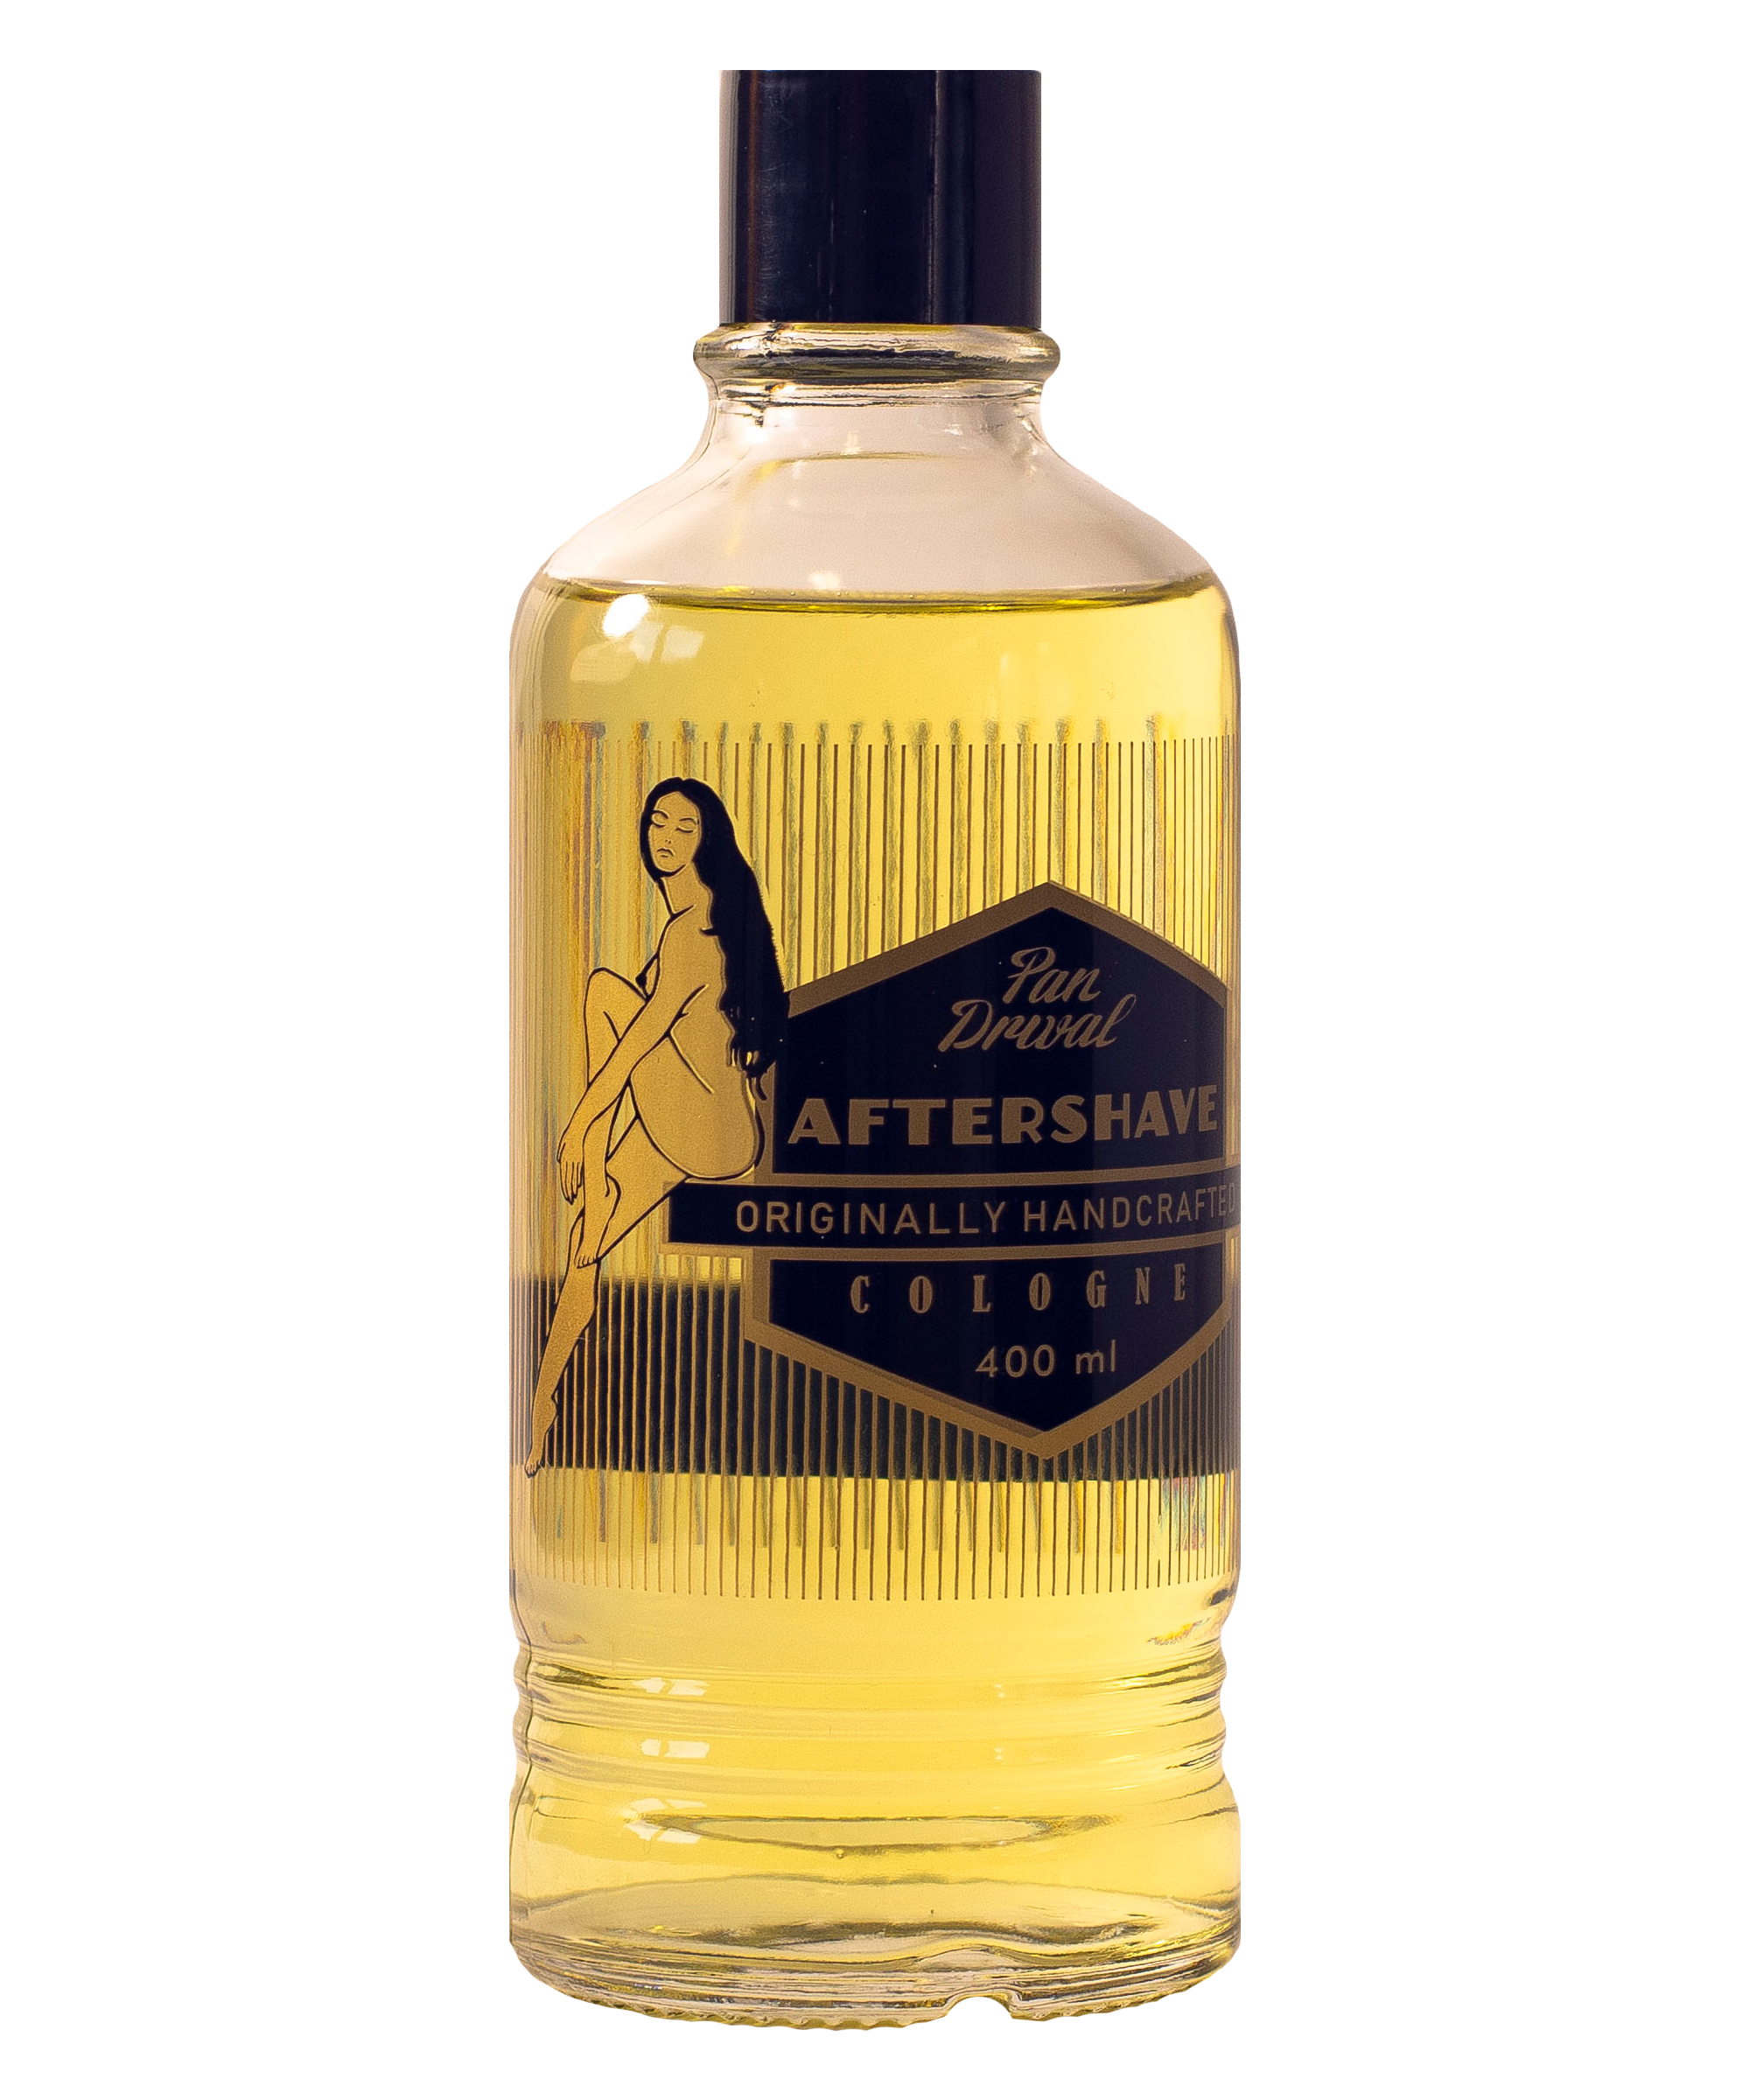 Pan Drwal Cologne Aftershave woda po goleniu 100ml (1)